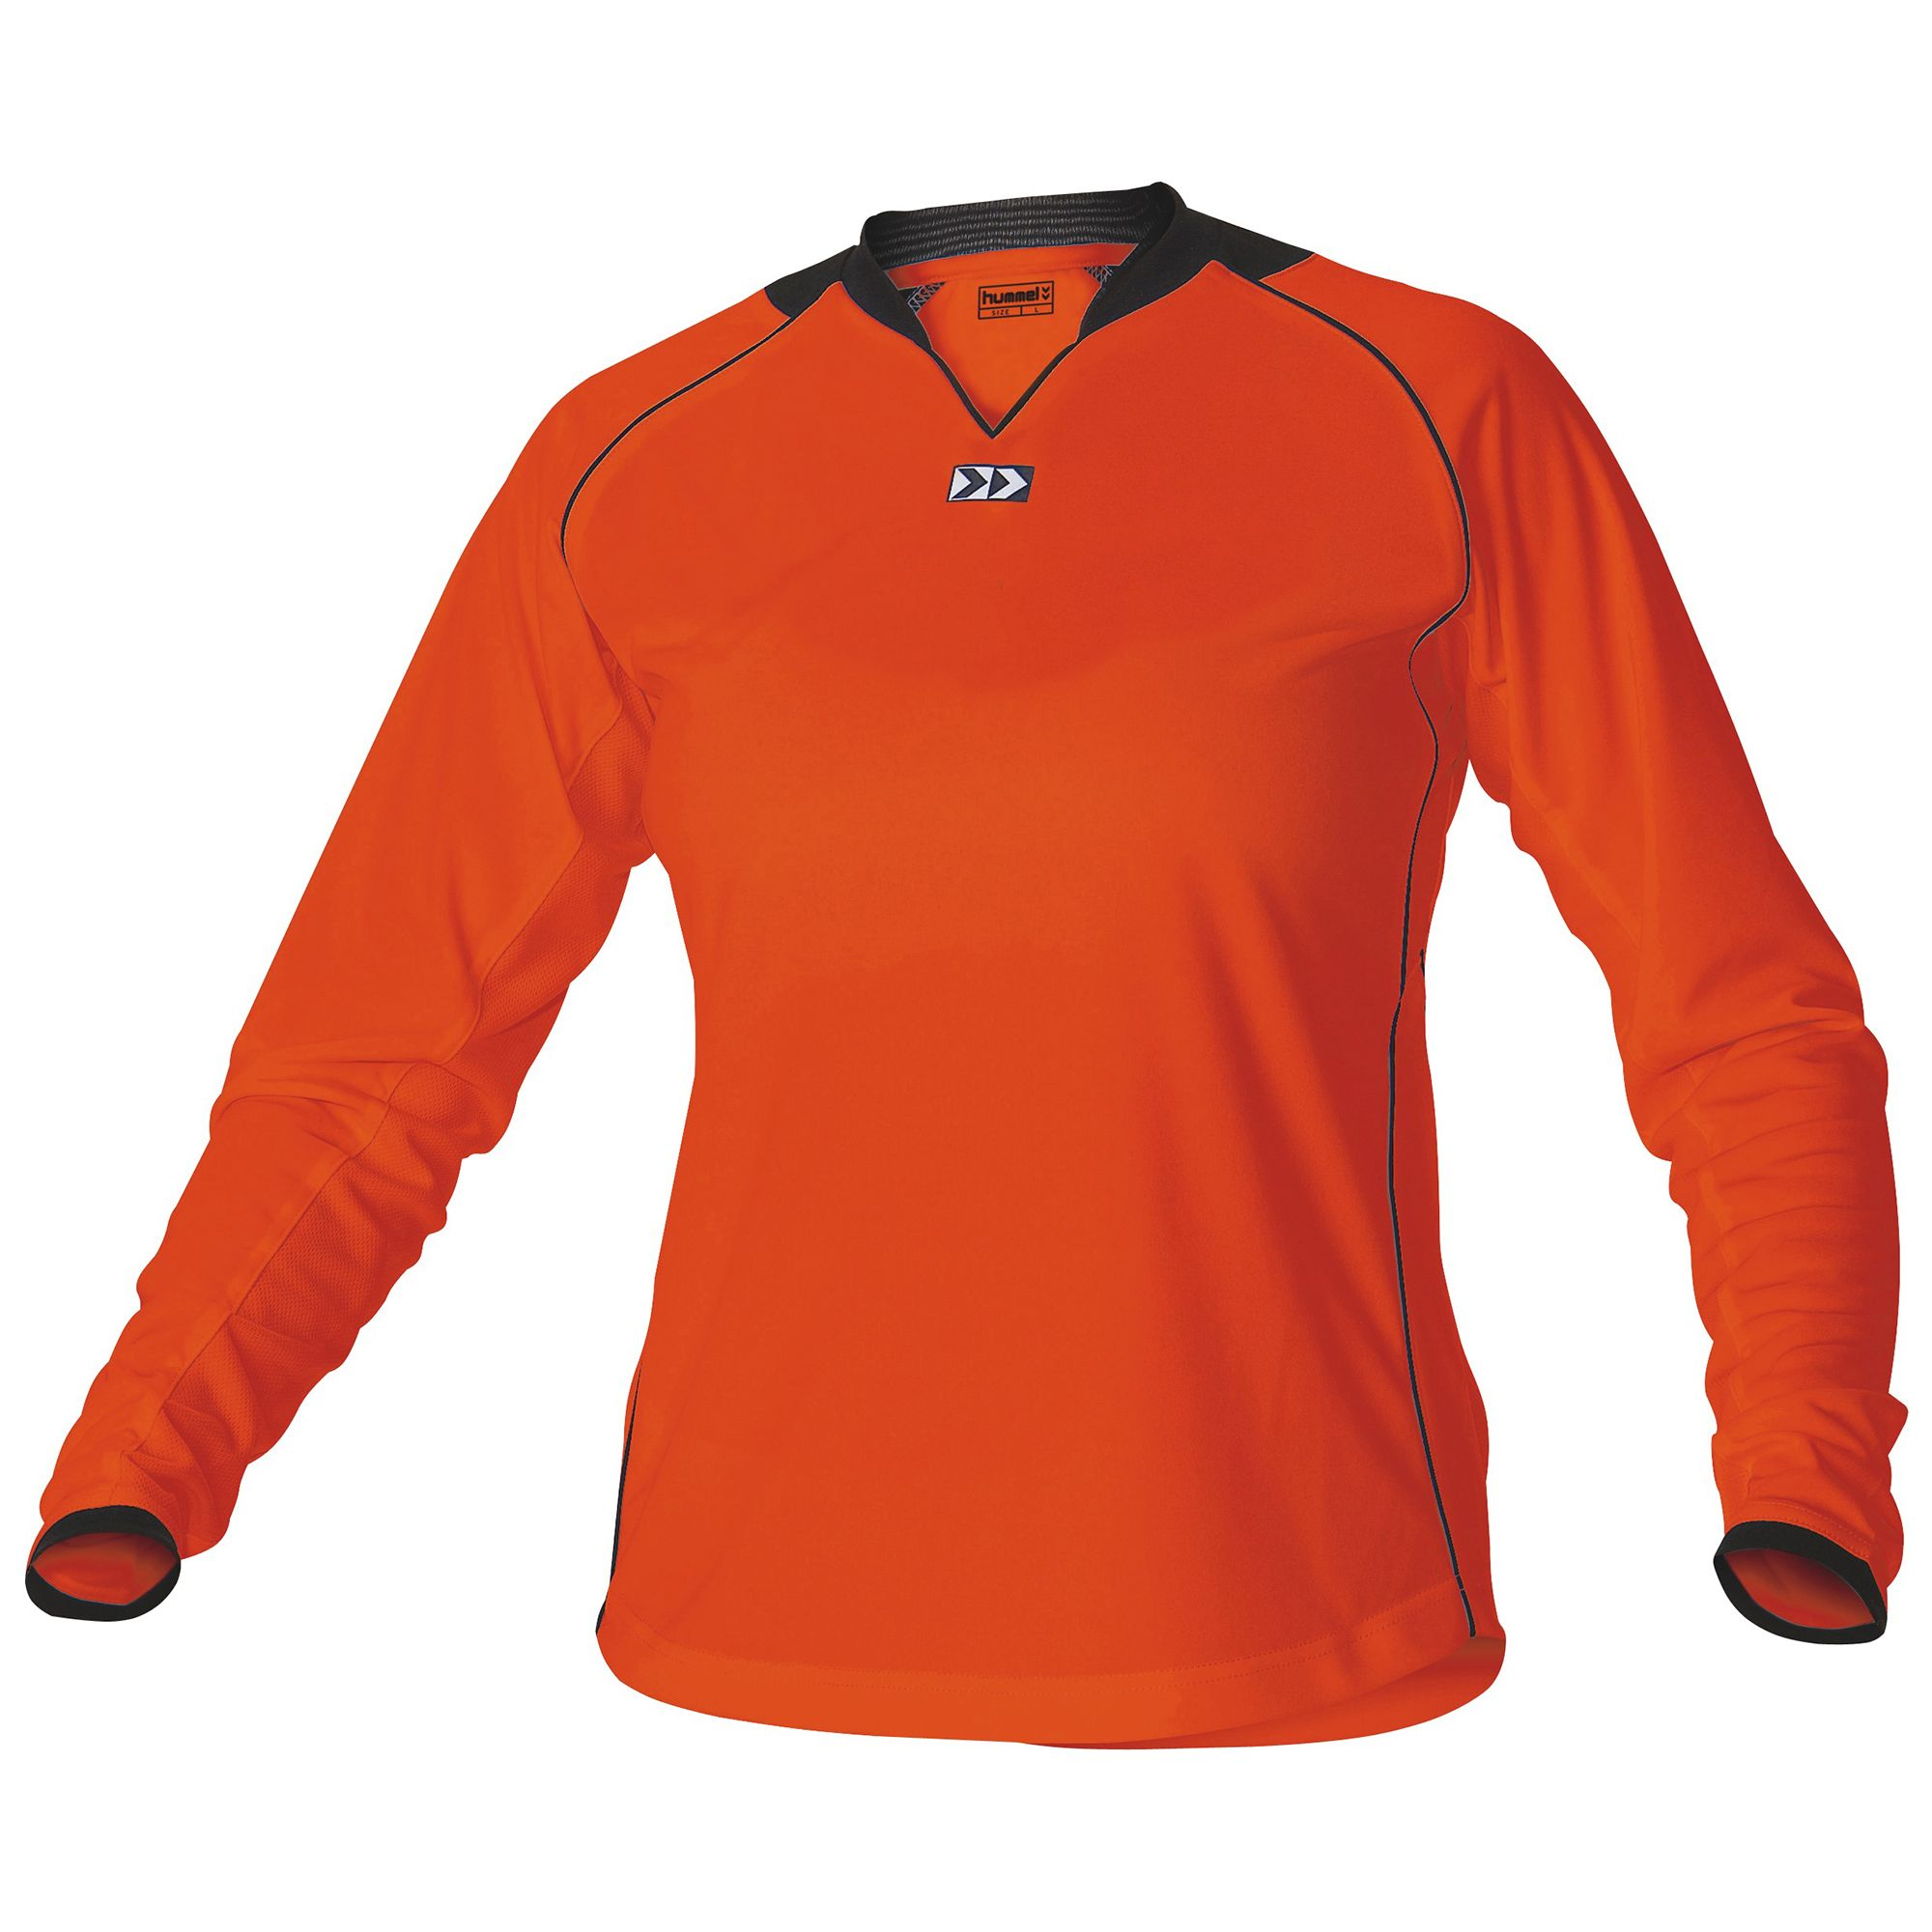 Hummel London Shirt Ladies l.m. Senior Oranje - Zwart